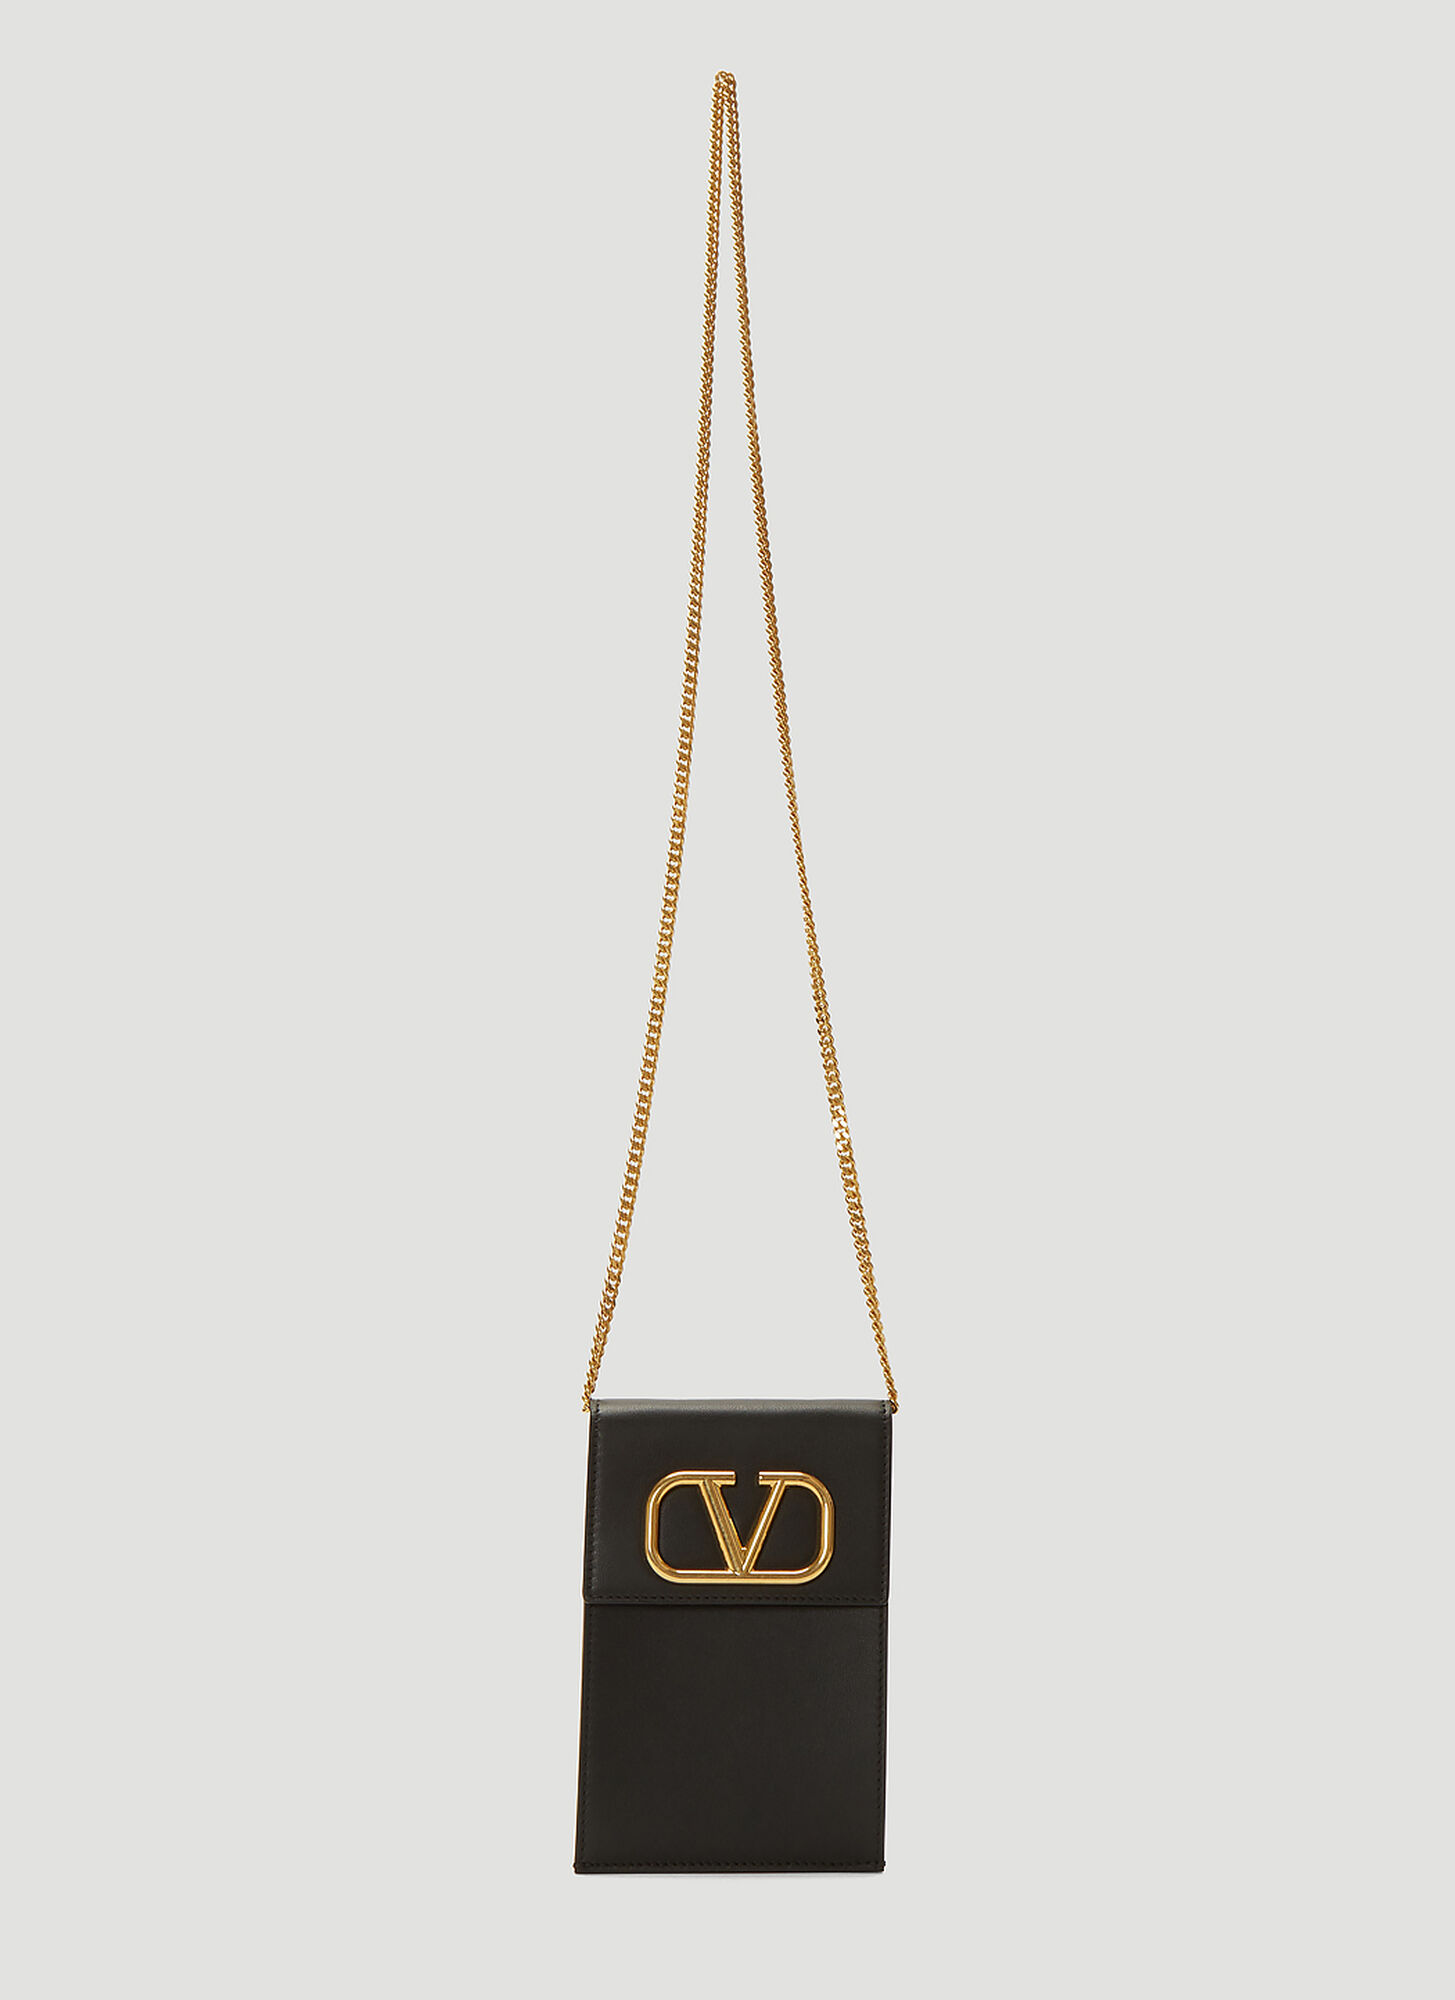 Valentino VLogo Chain Phone Case in Black